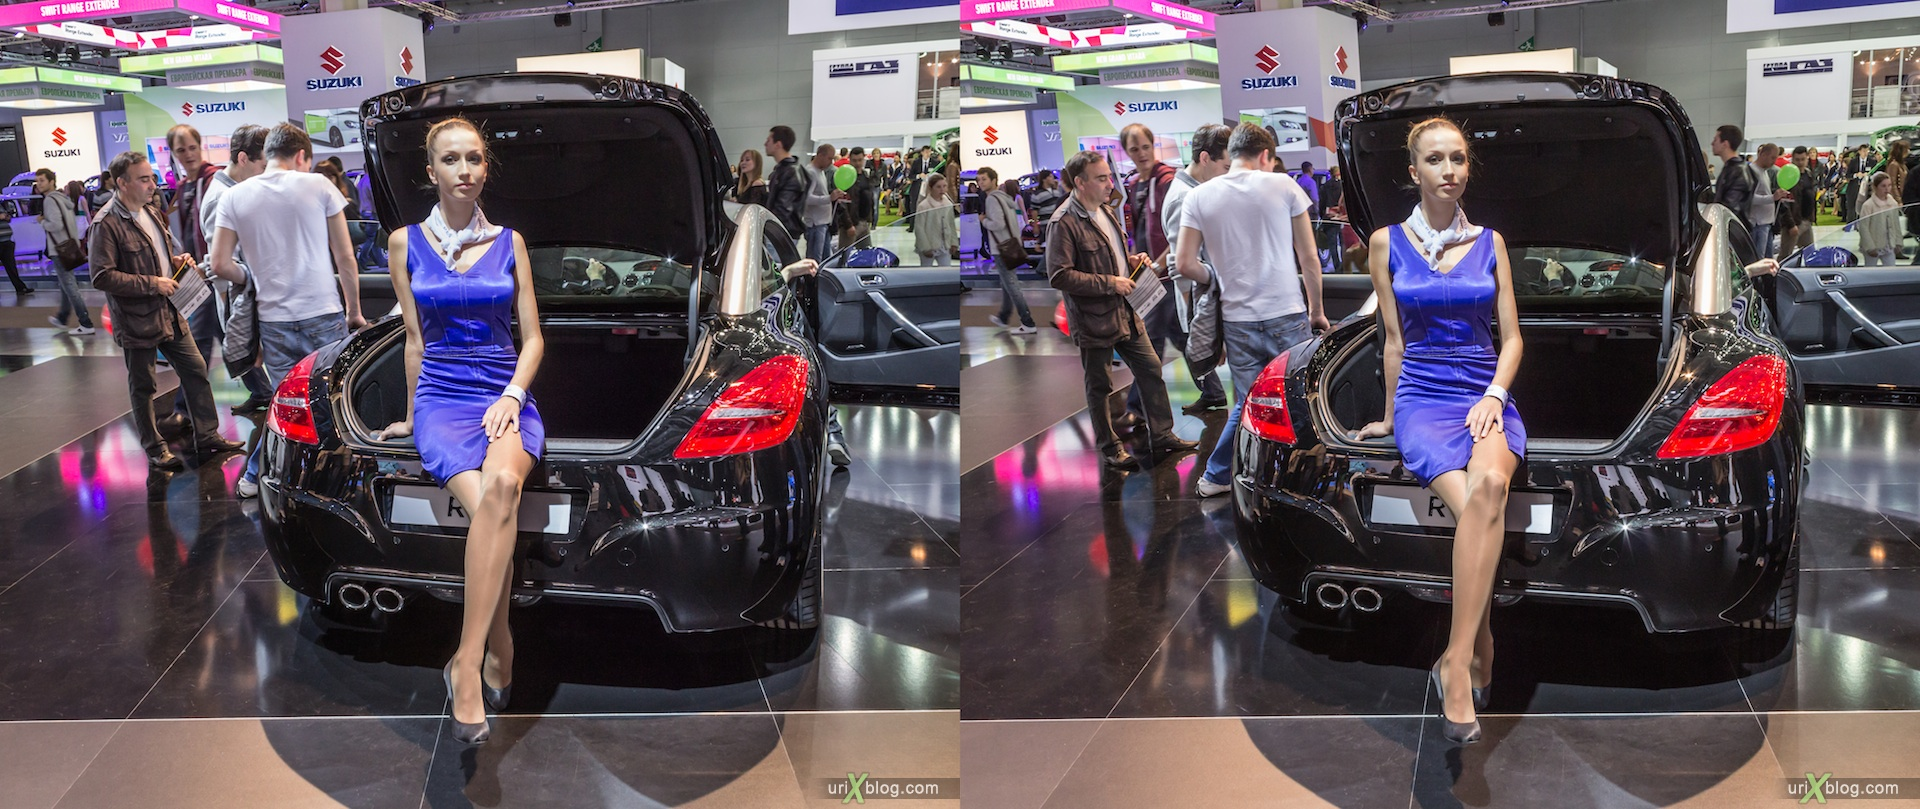 2012, Peugeot, girl, model, Moscow International Automobile Salon, auto show, 3D, stereo pair, cross-eyed, crossview